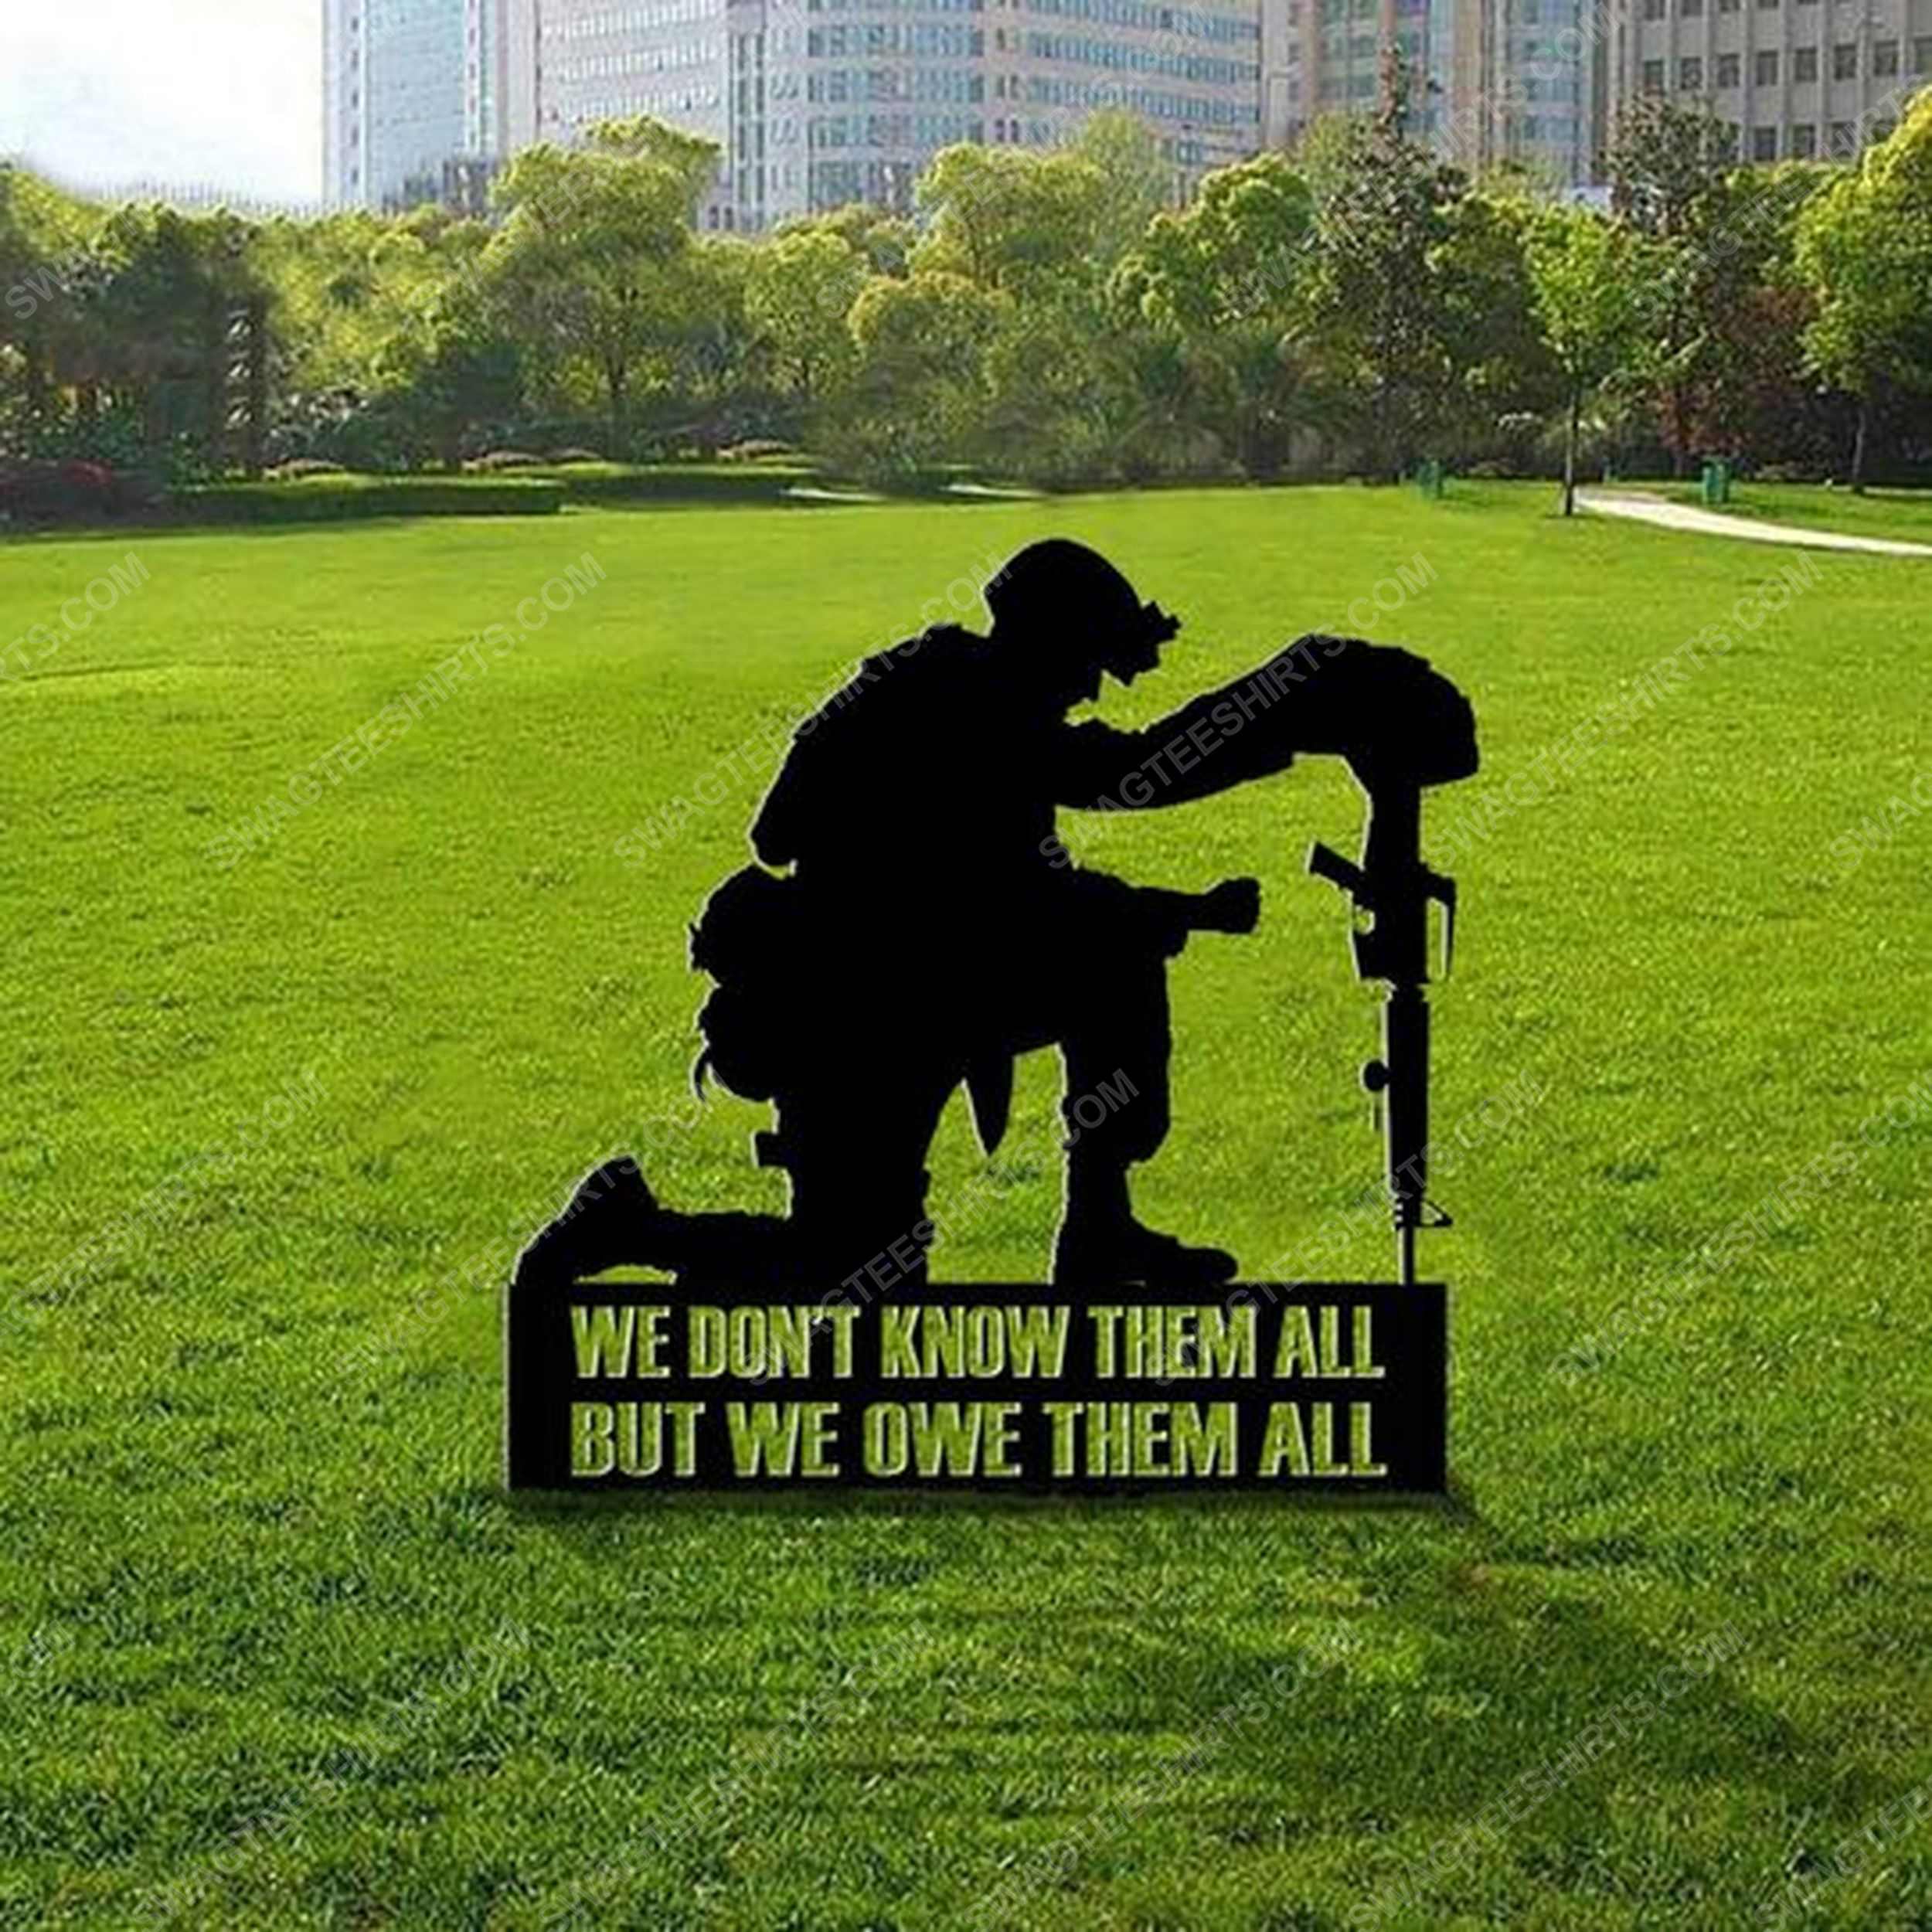 We don't know them all but we owe them all military memorial day yard sign 2(1)